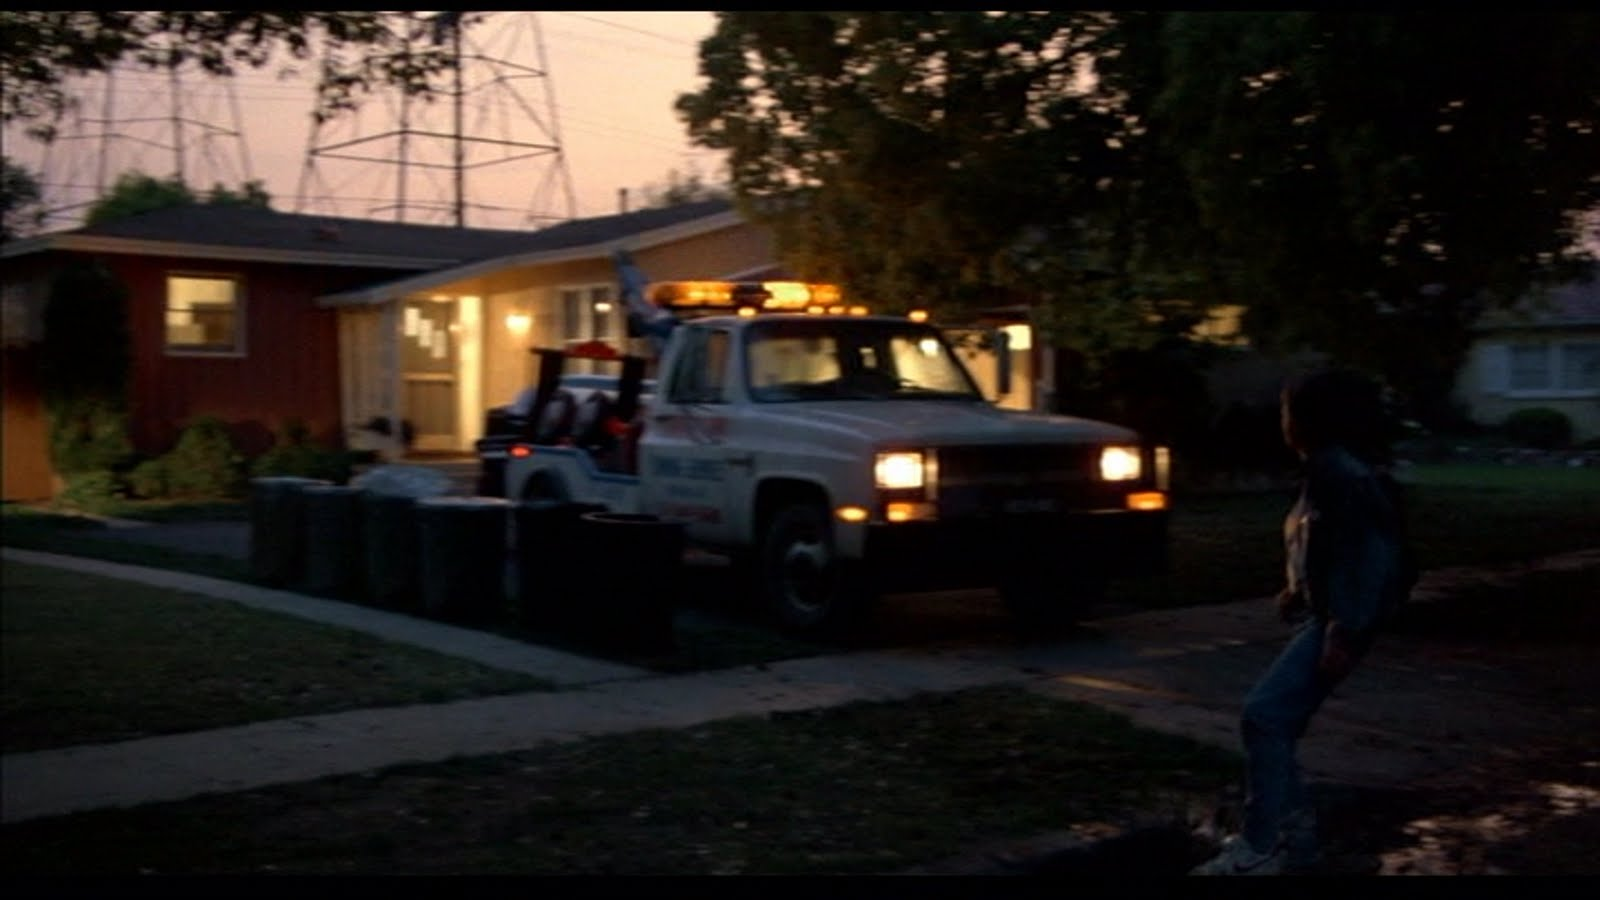 back-to-the-future-filming-locations-marty-mcfly-house-1985